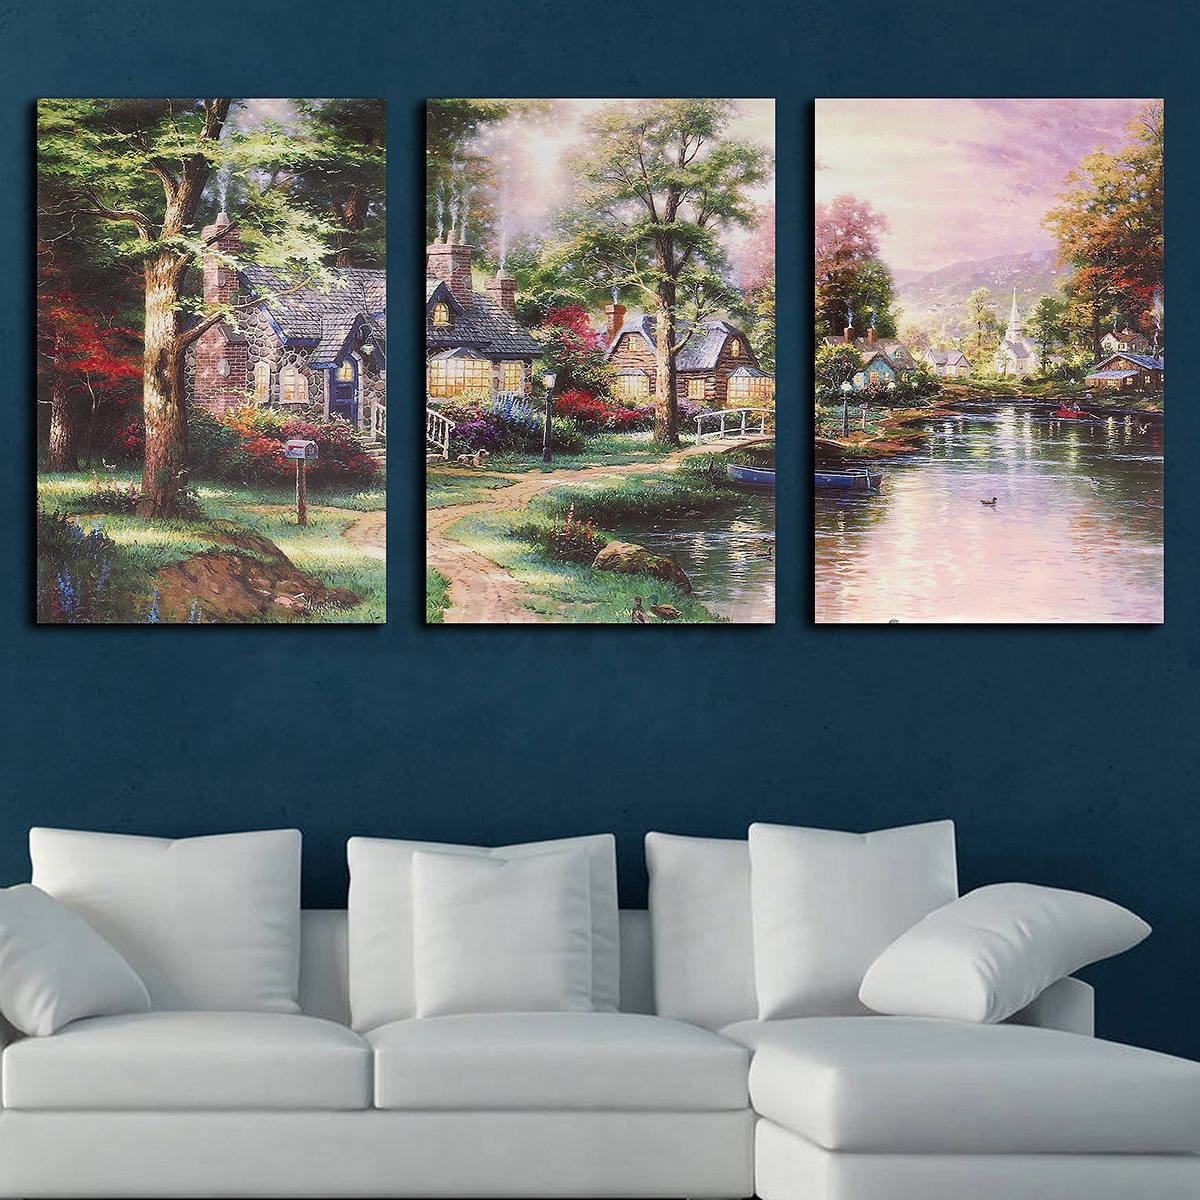 Modern Forest House: Nature Forest Modern Canvas Art Painting Picture Print